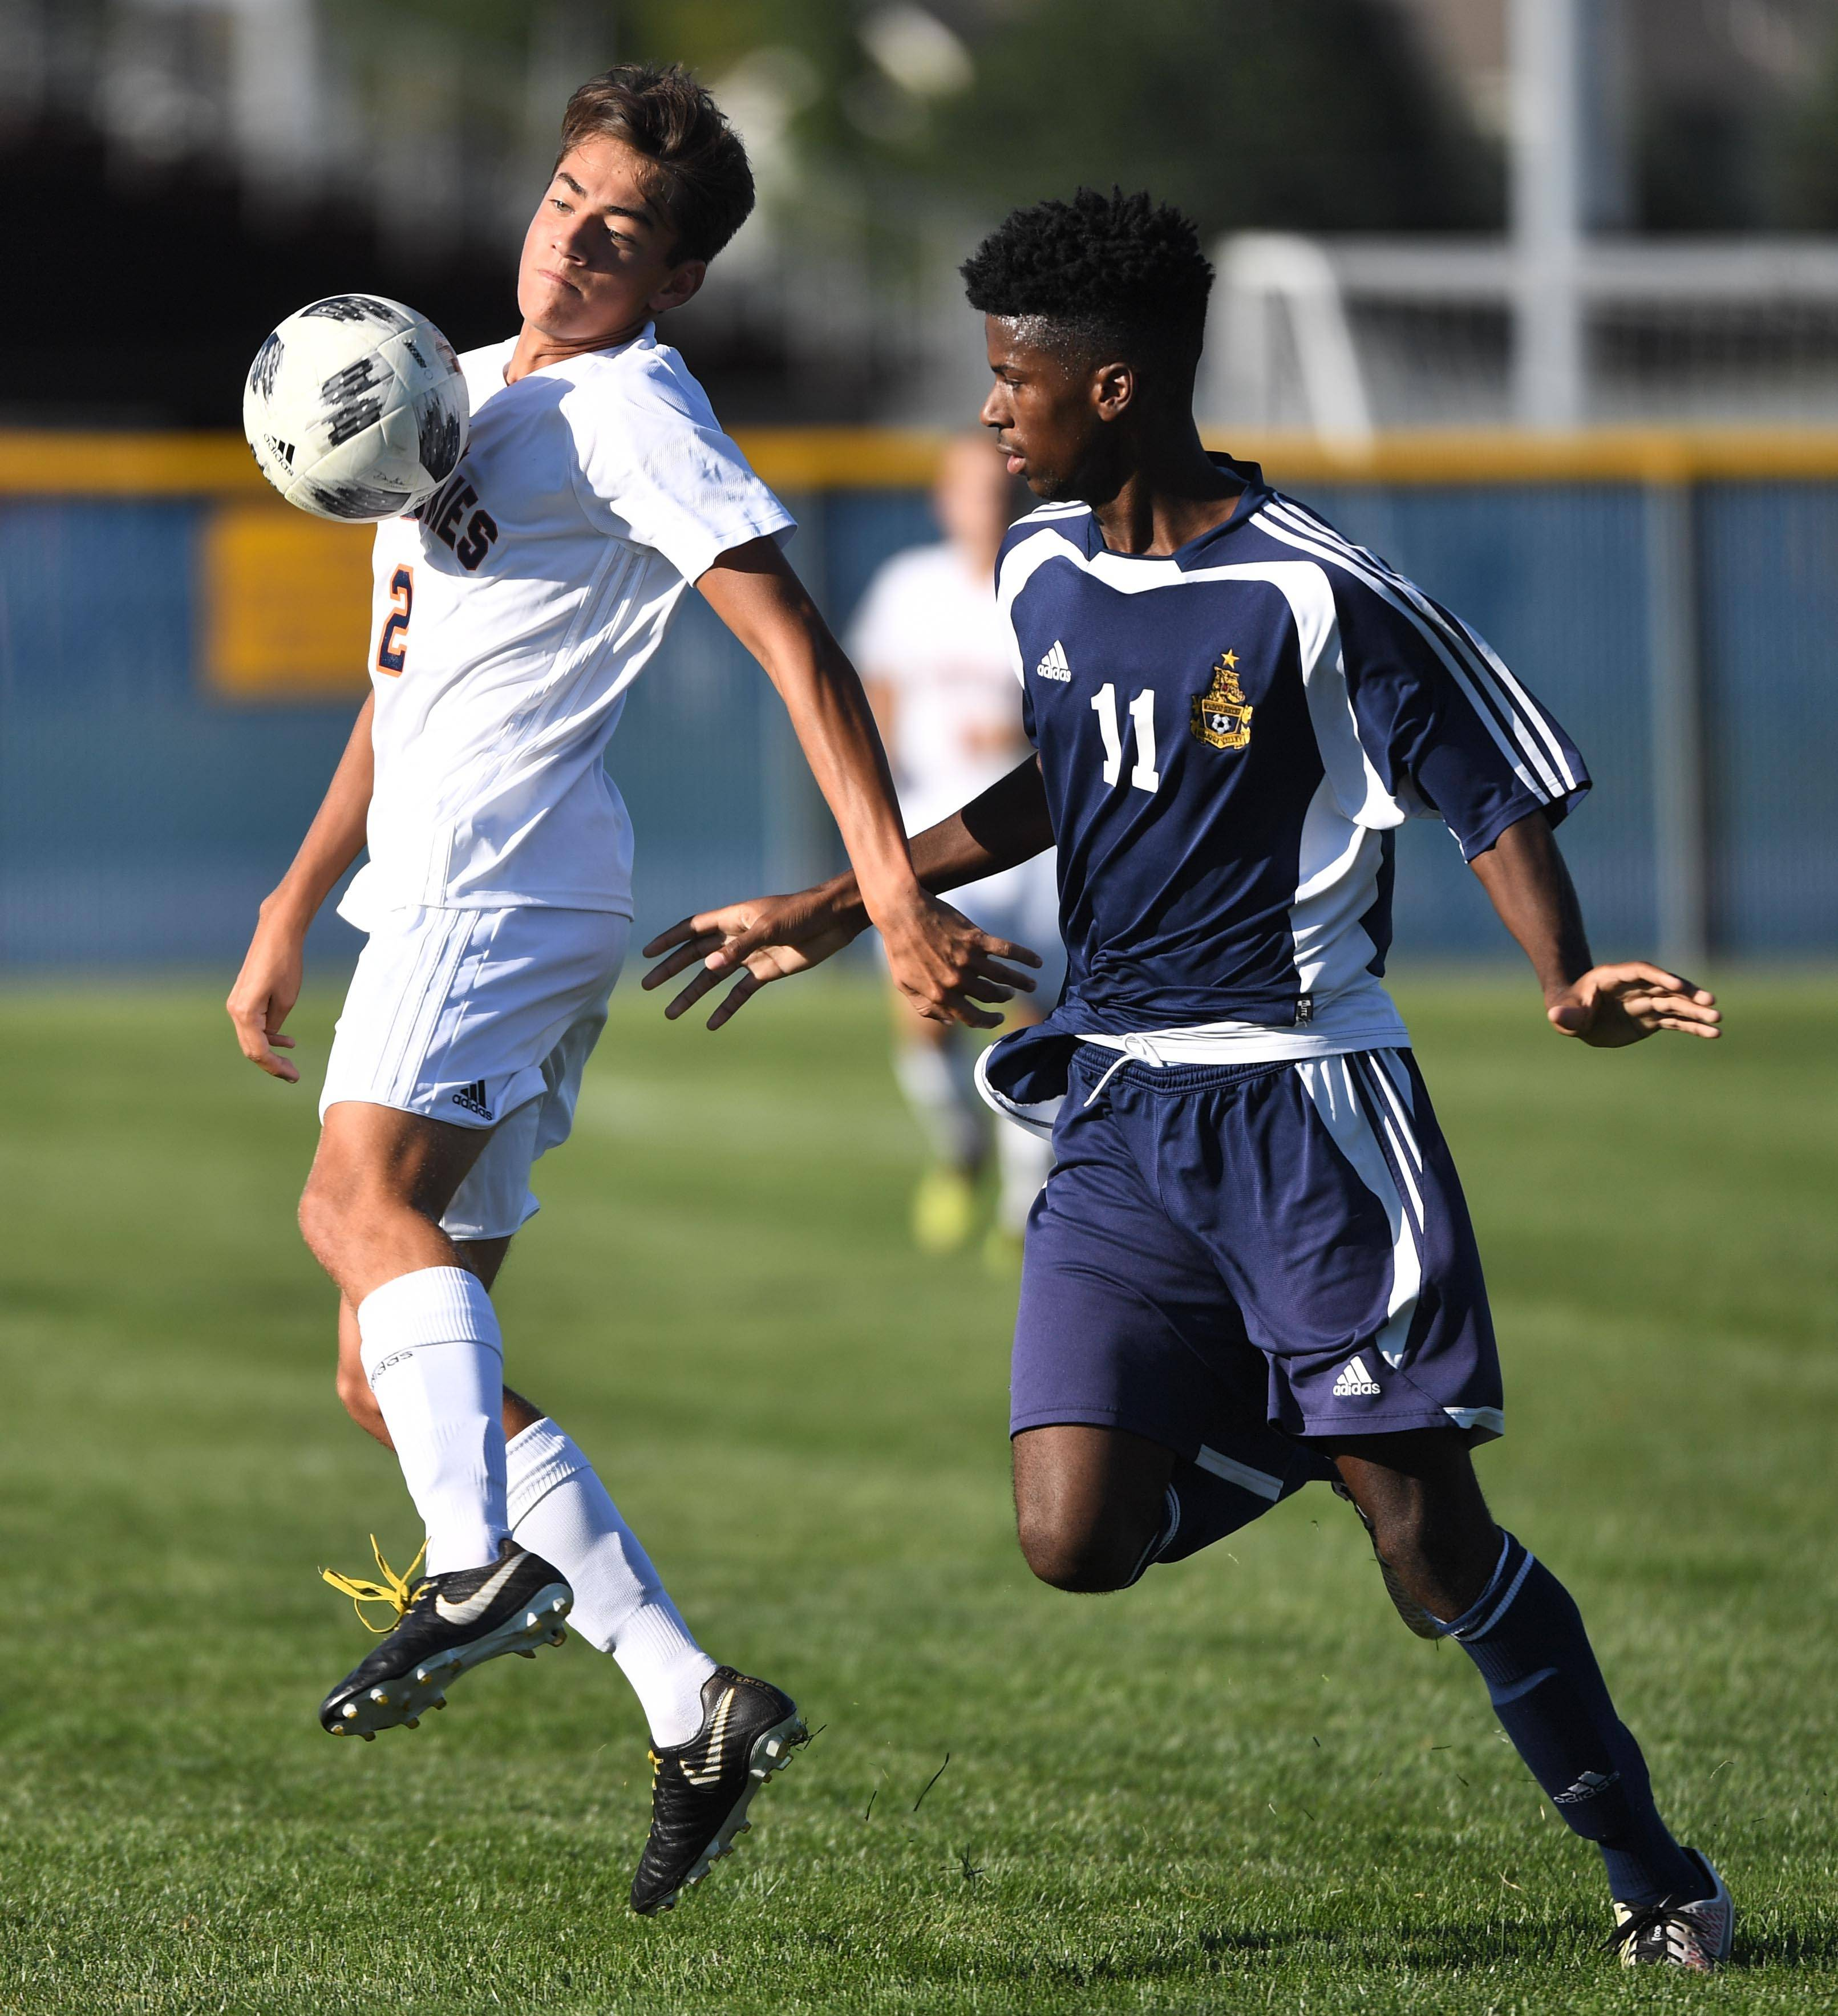 Naperville North's Jacob Vrankinin keeps the ball away from Neuqua Valley's Ben Head a boys soccer game Tuesday in Naperville.